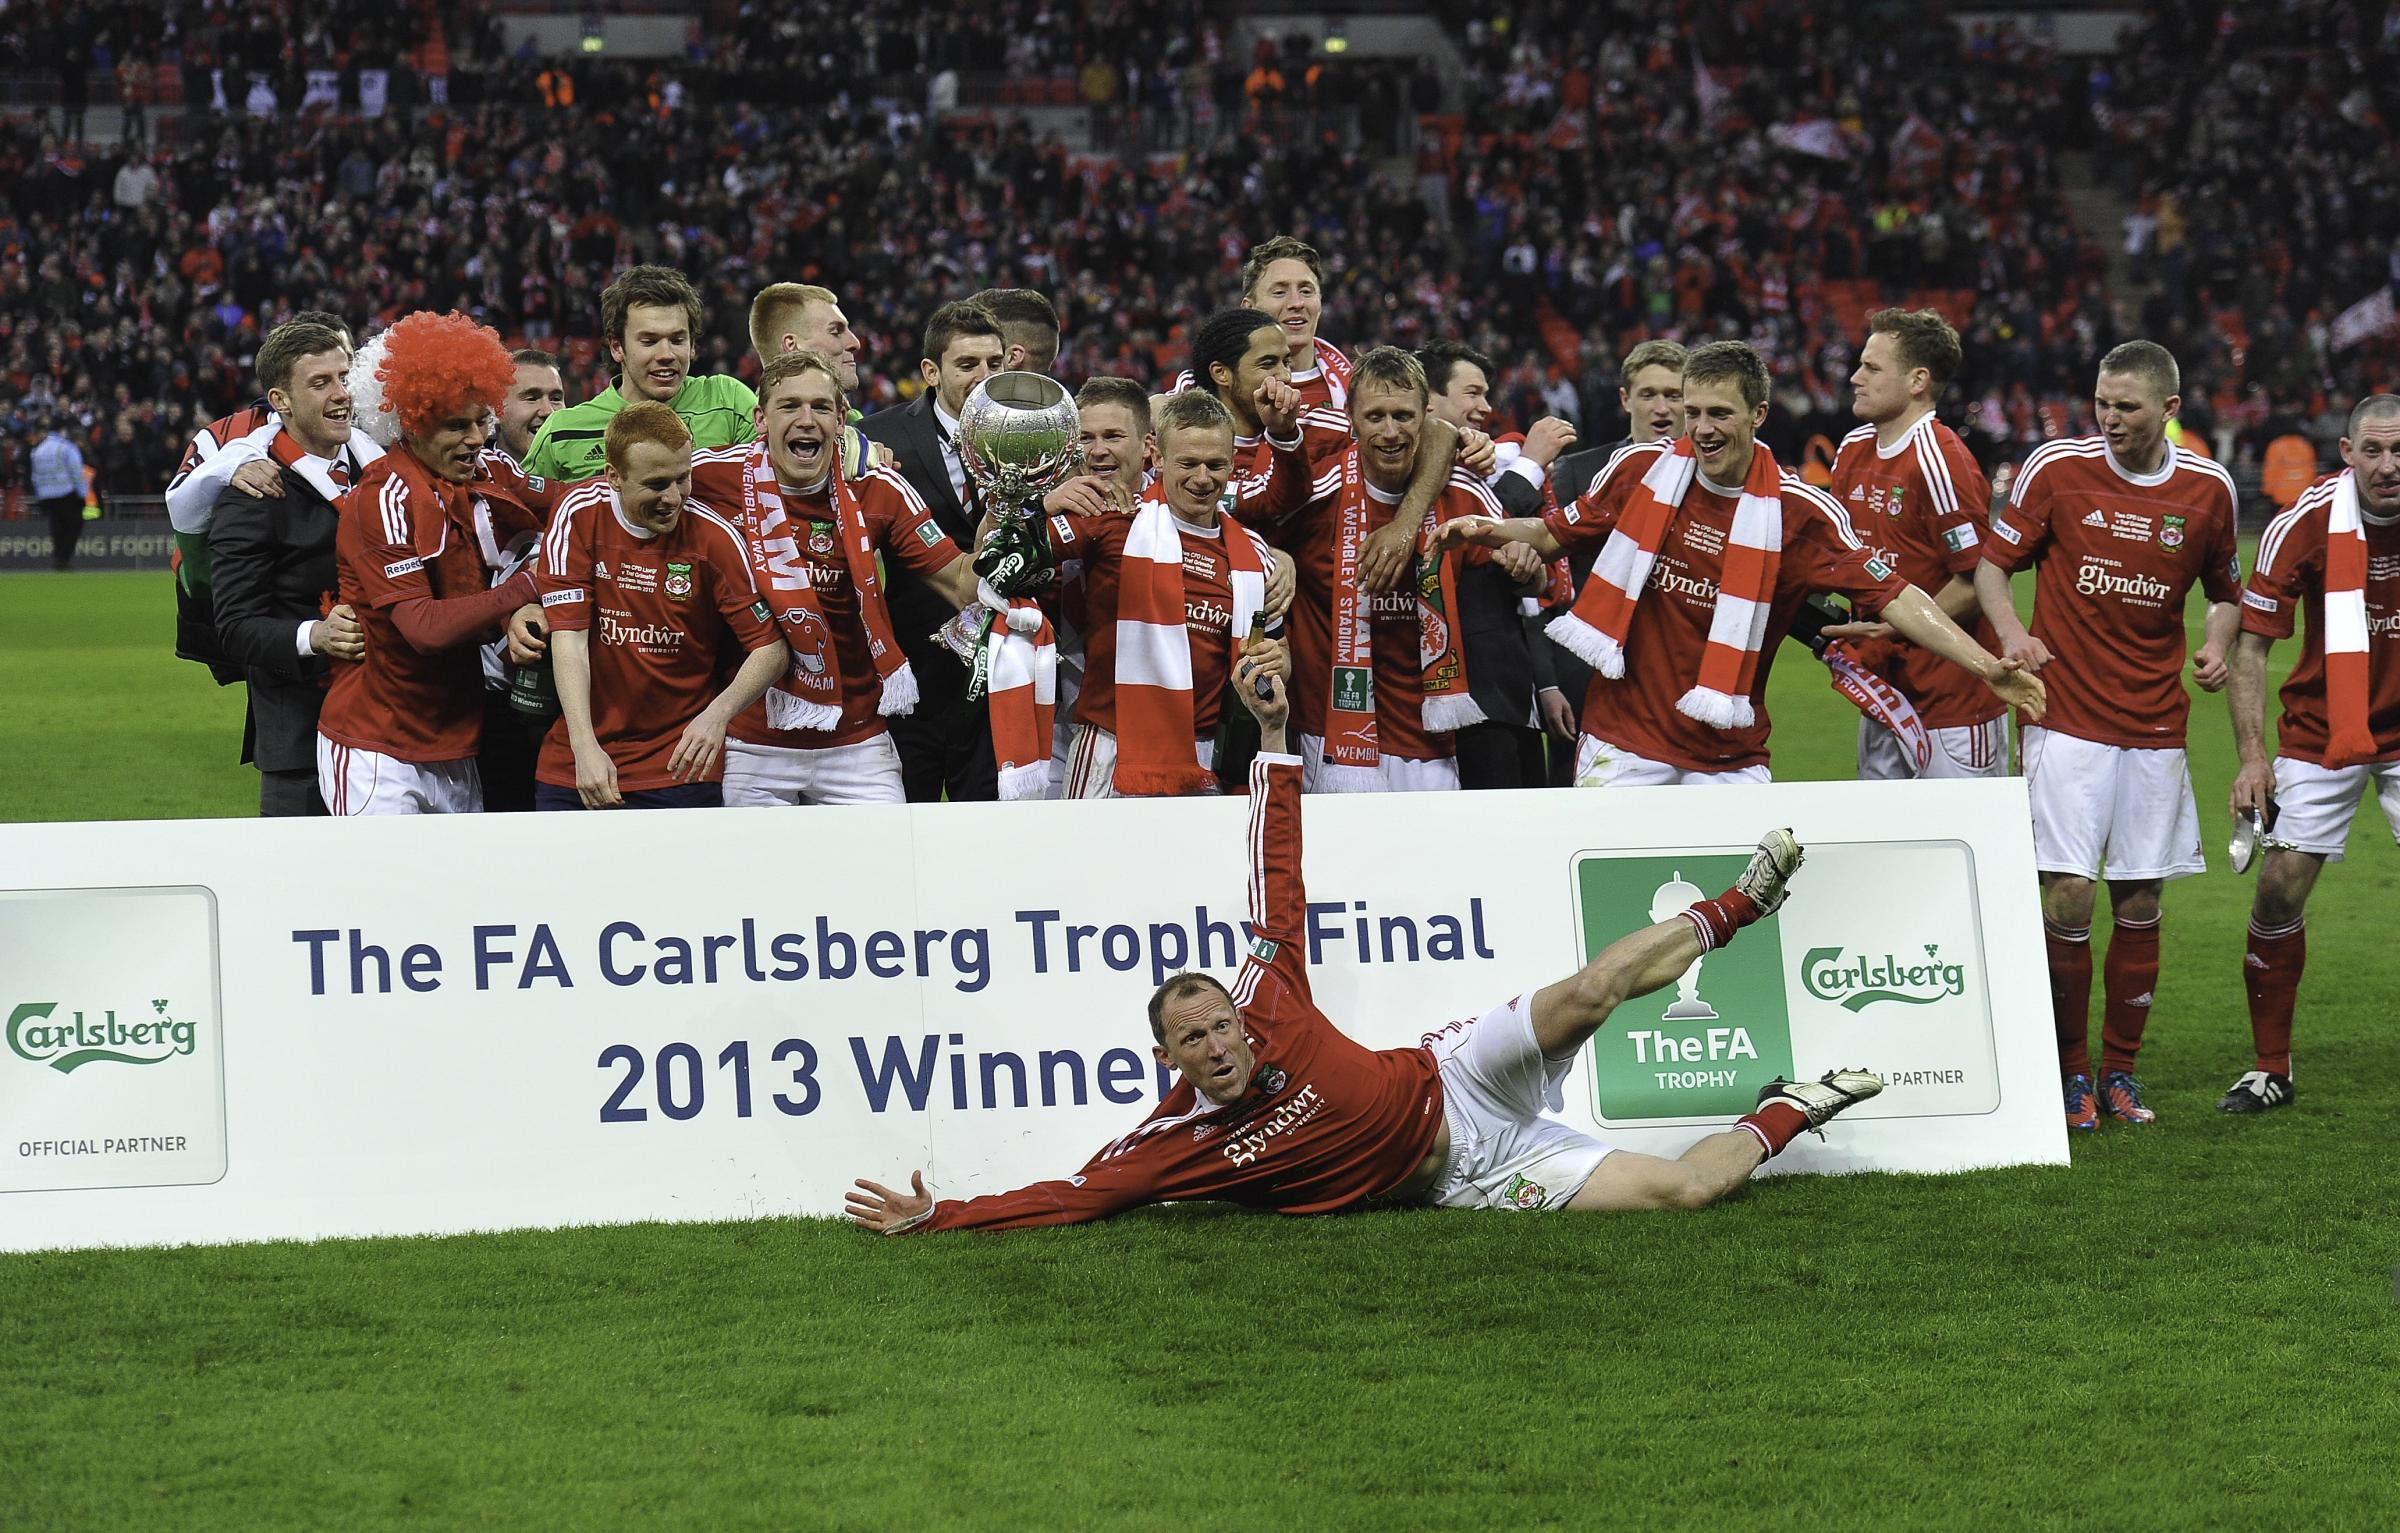 FA Trophy success but 10 years of hurt for Wrexham AFC - a review of the decade